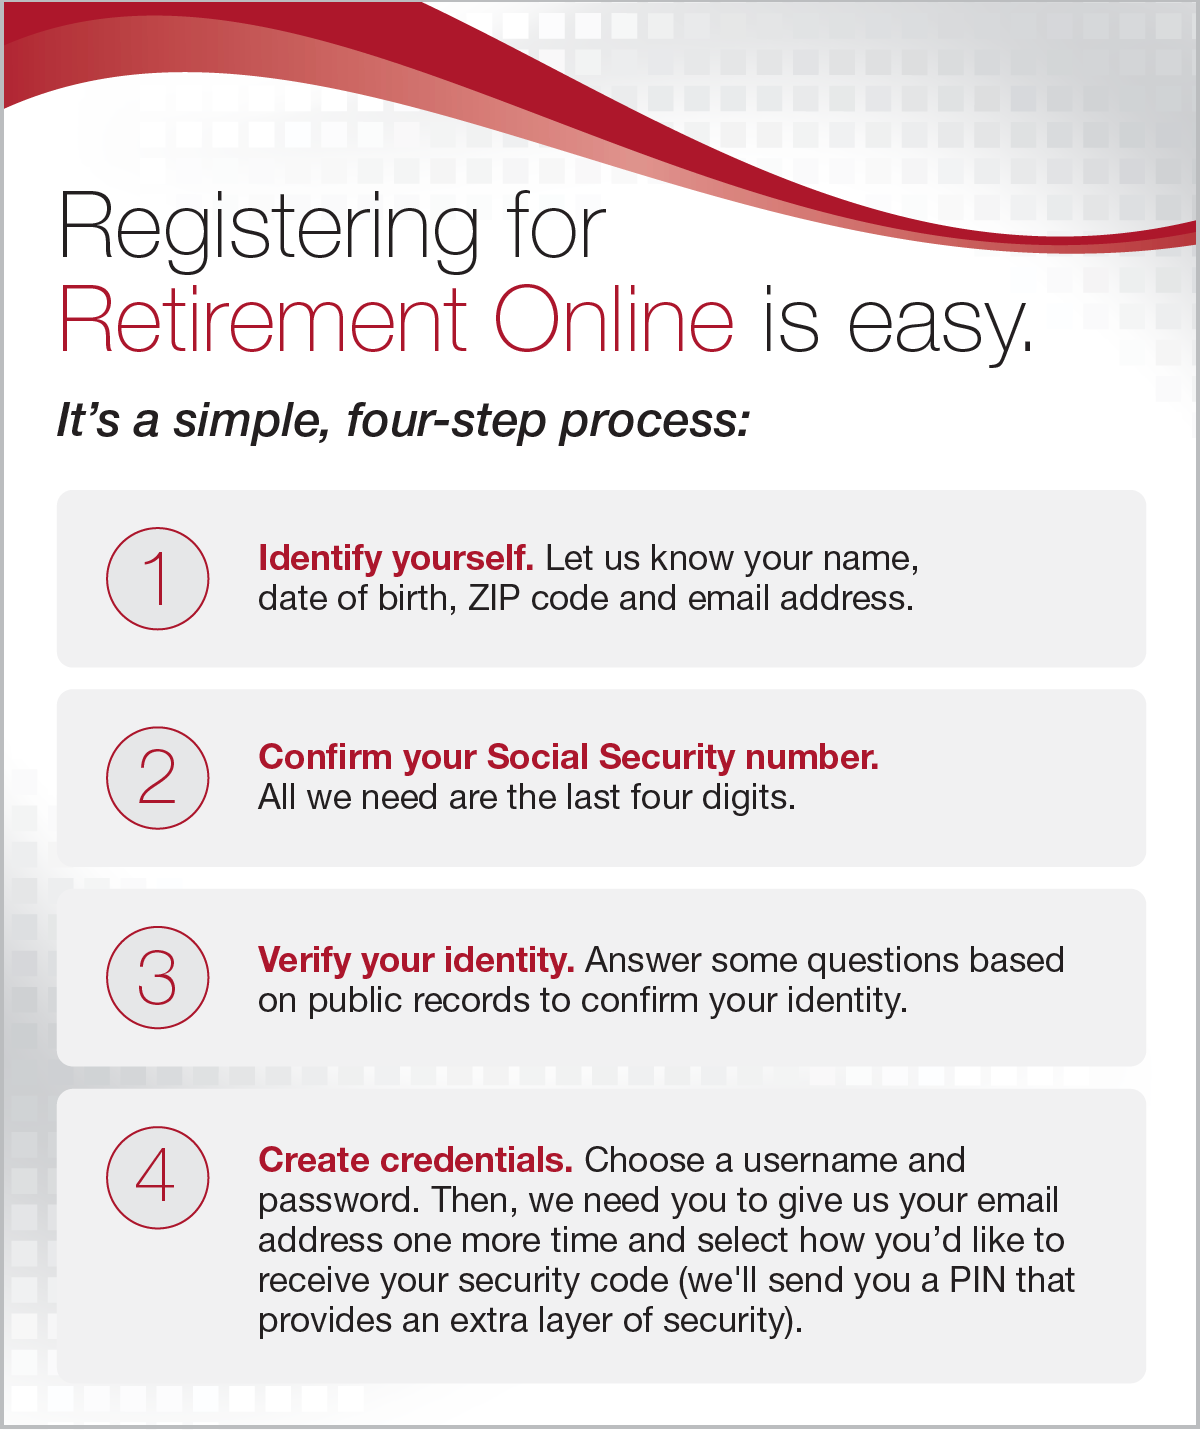 Registering for Retirement Online is easy